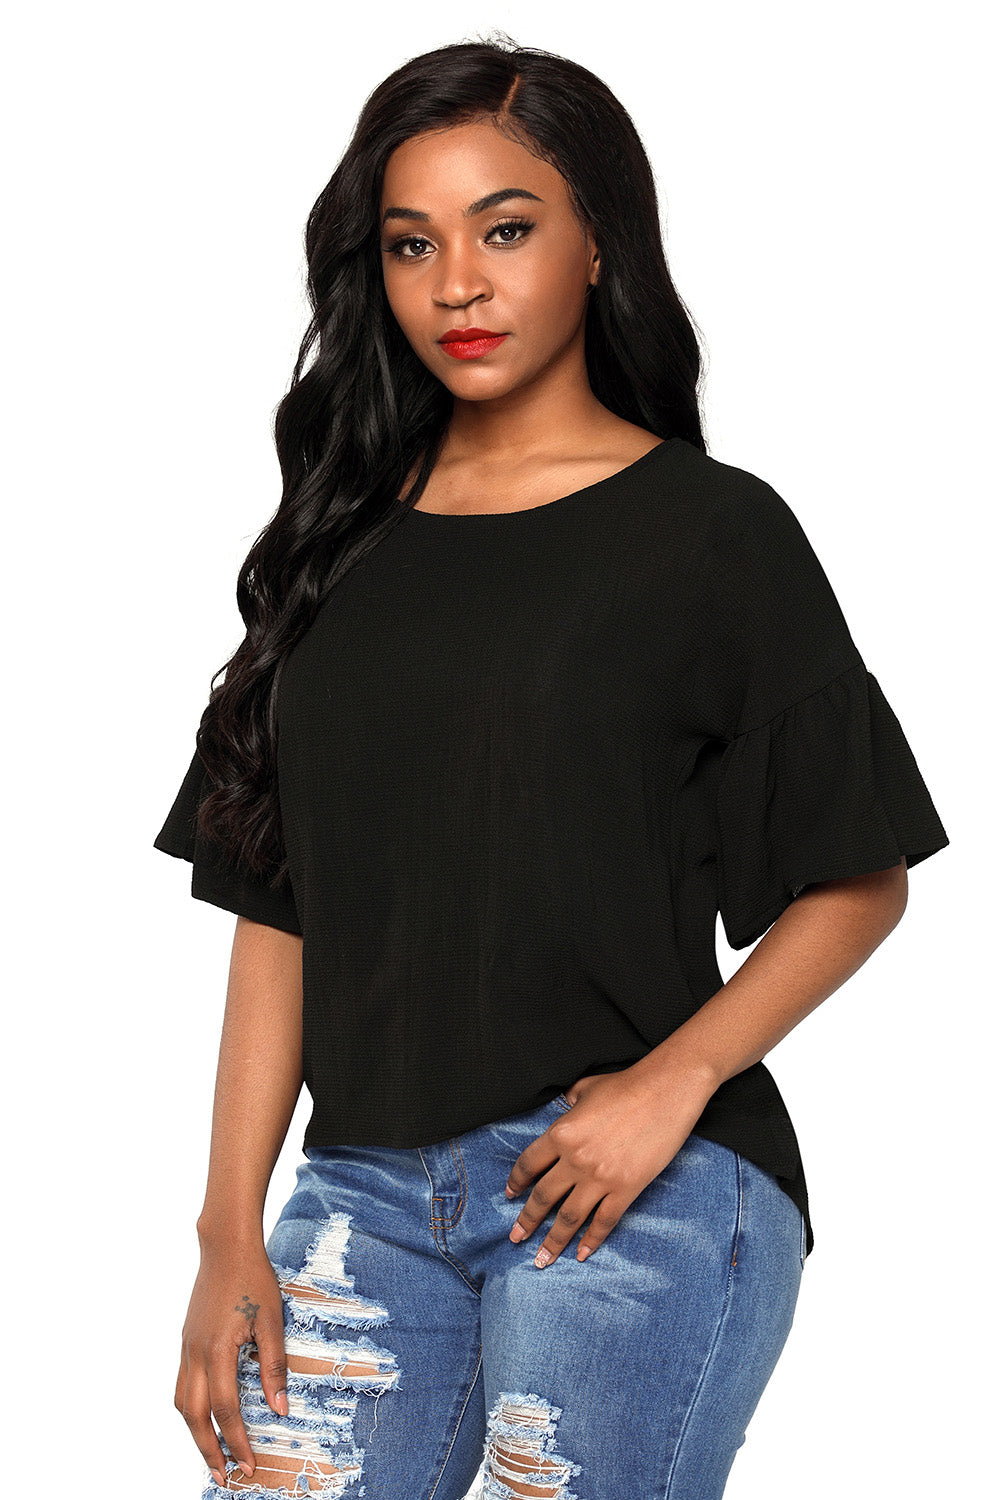 Black Short Bell Sleeves Sheer Chiffon Blouse